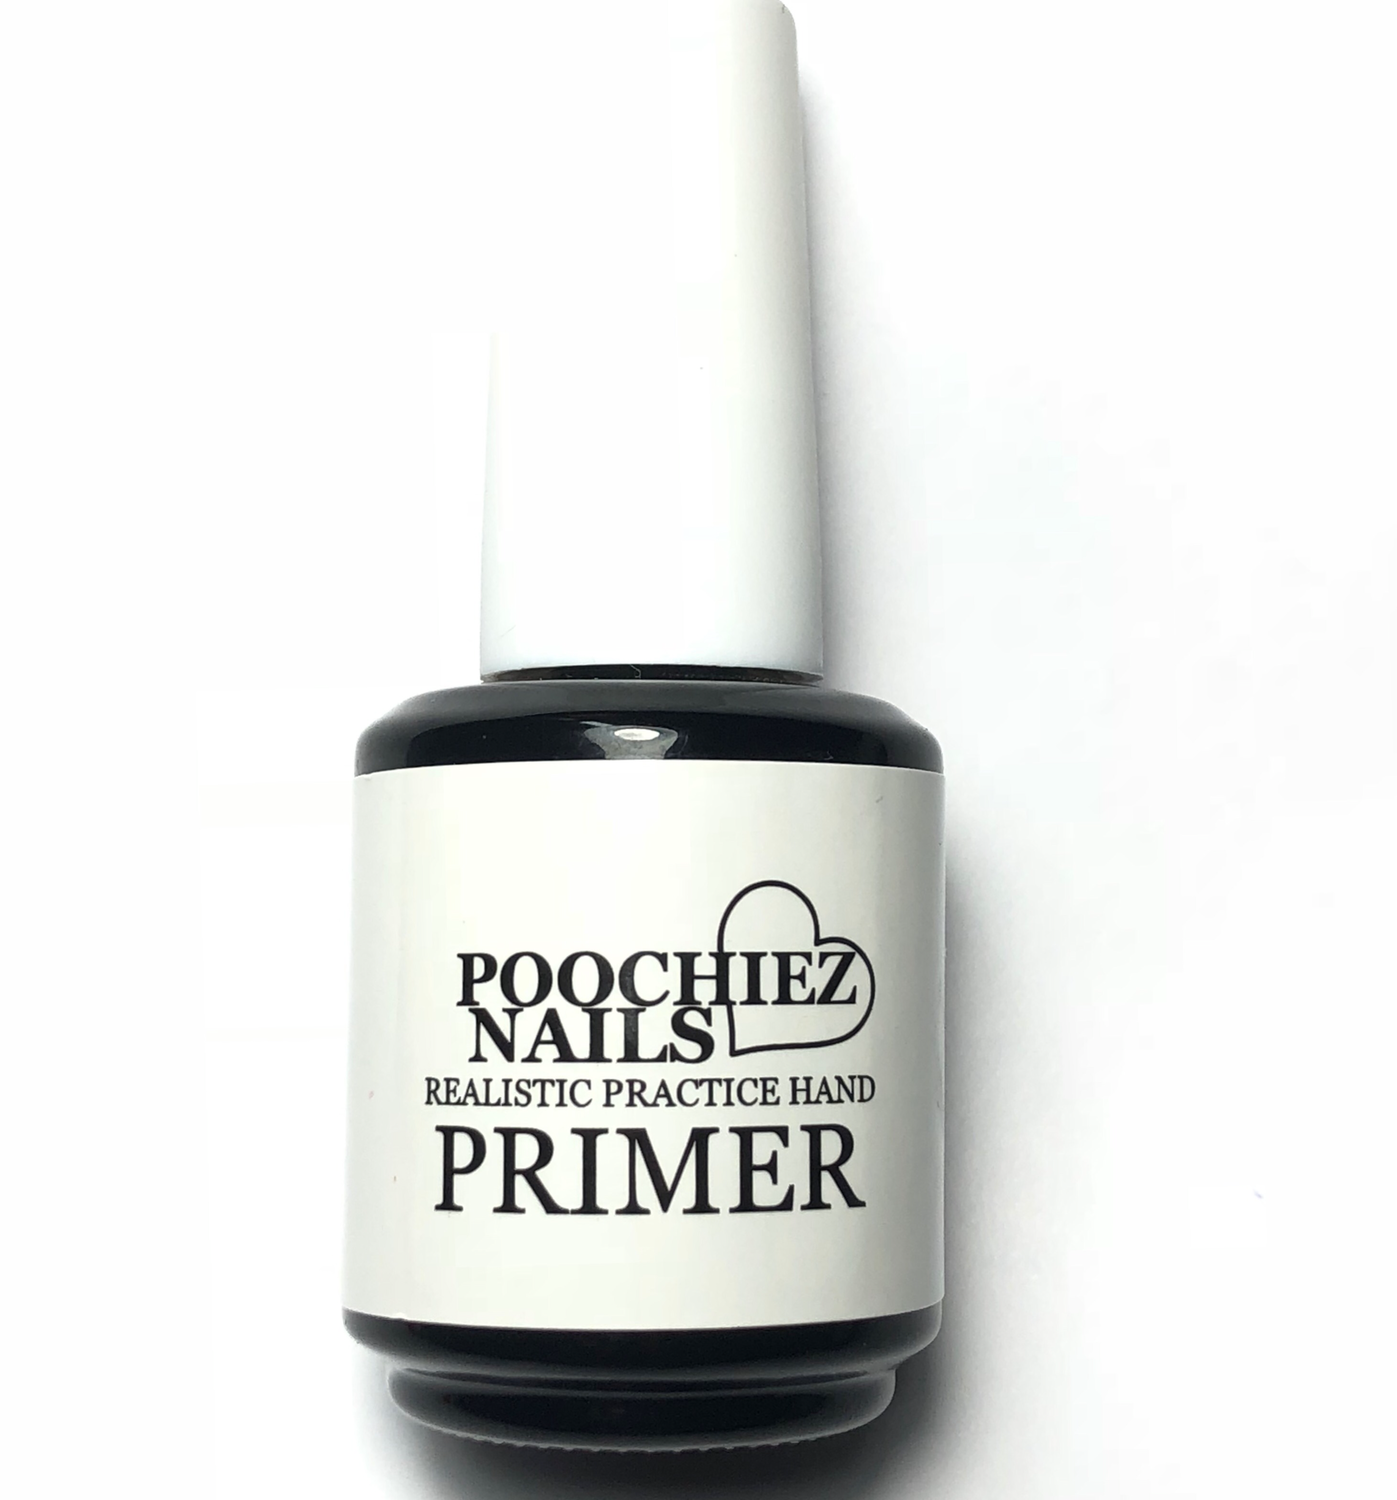 ITEM #17 PRIMER/BONDER (FOR FAKE HAND ONLY) YOU CAN NOT USE THIS ON HUMANS